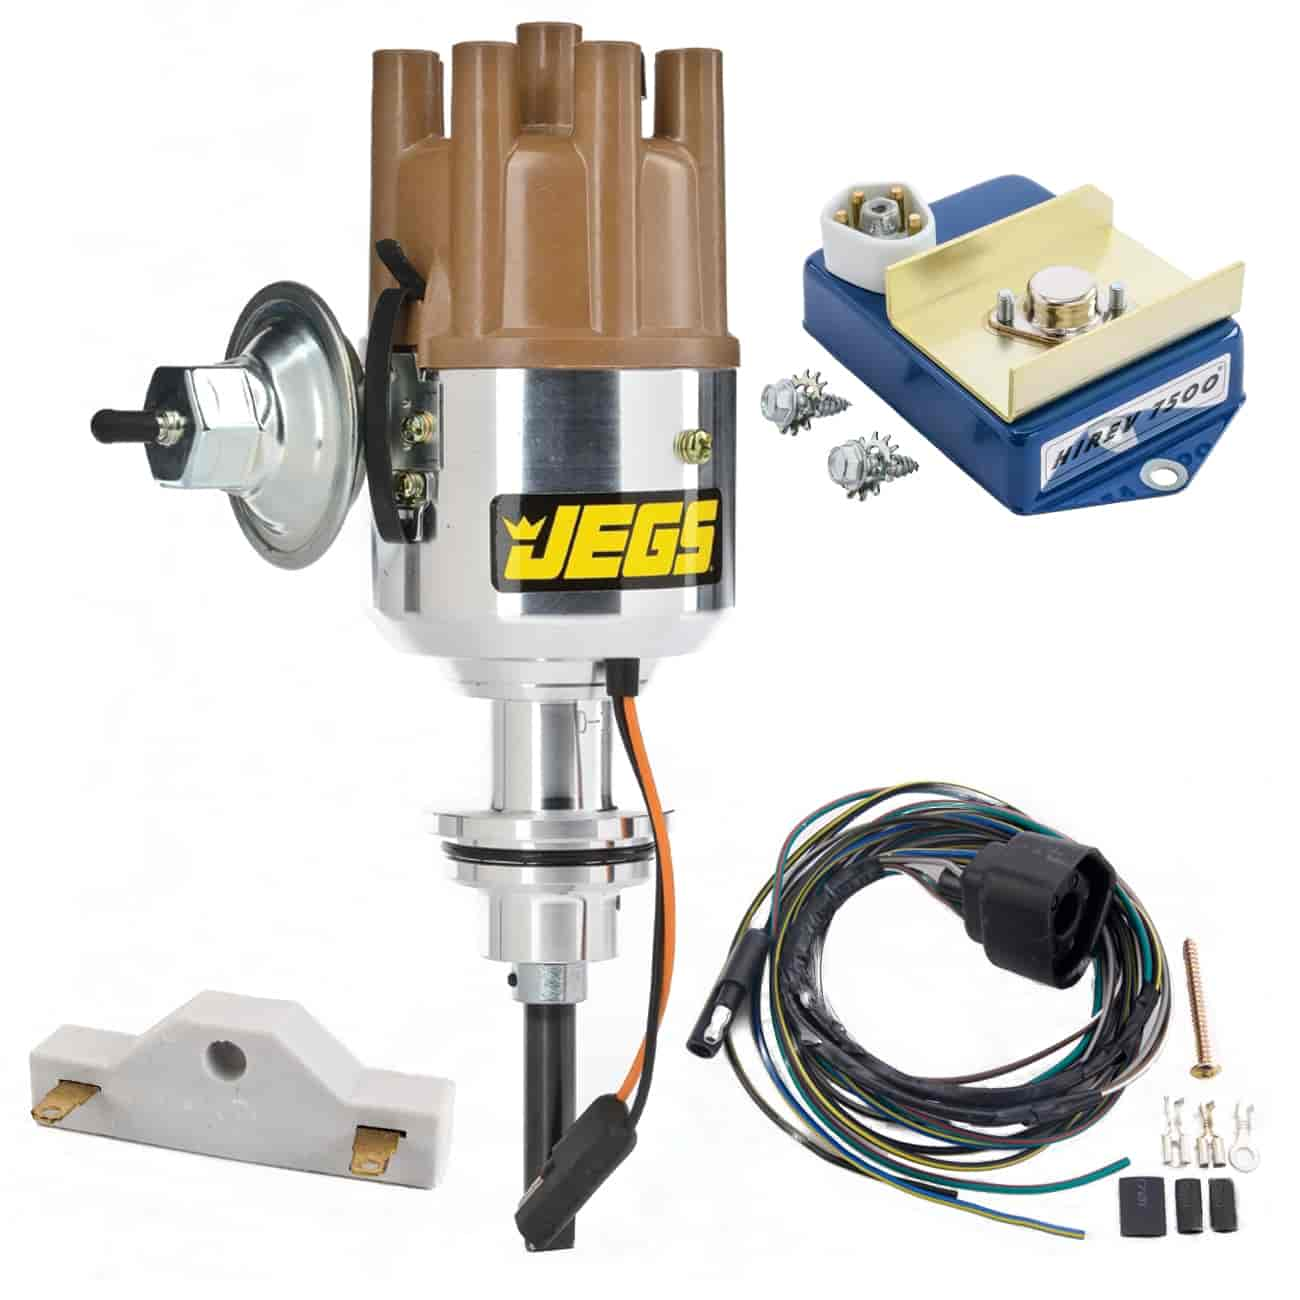 JEGS Performance Products 40500K - JEGS Mopar Electronic Ignition Conversion Kits with Forged Distributors